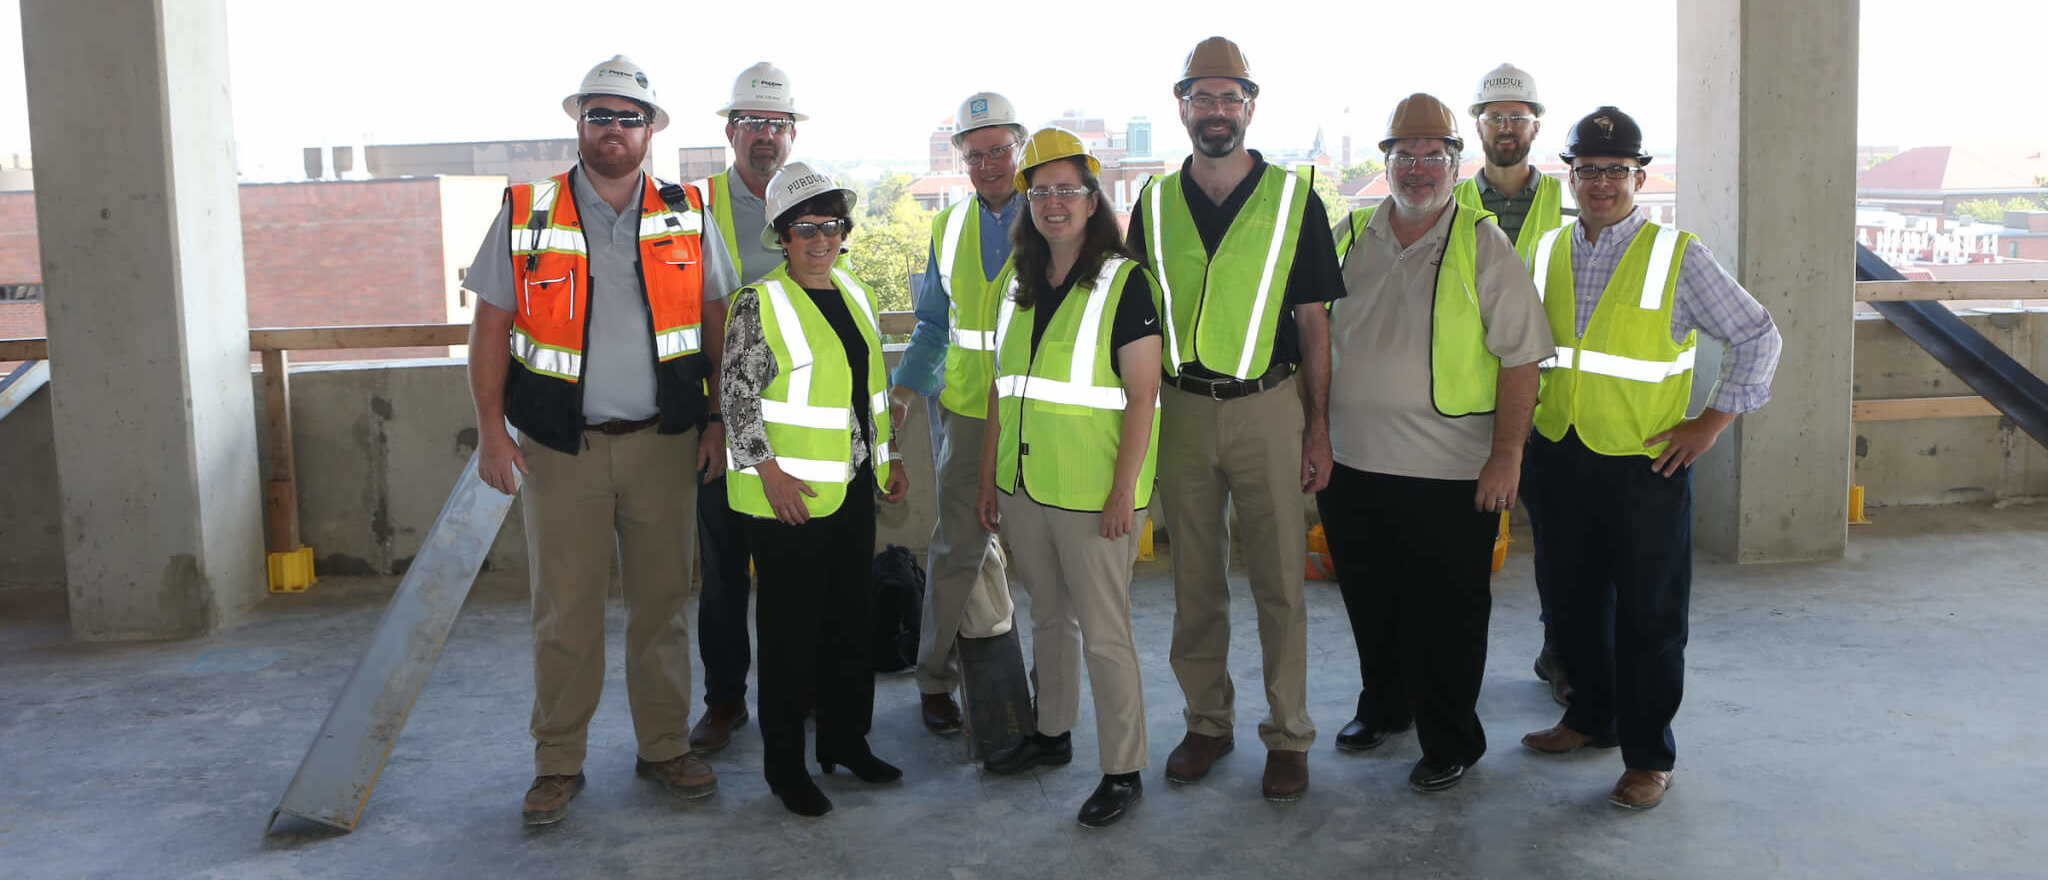 A group of Purdue Agriculture leaders on the top floor of the under construction ABE building